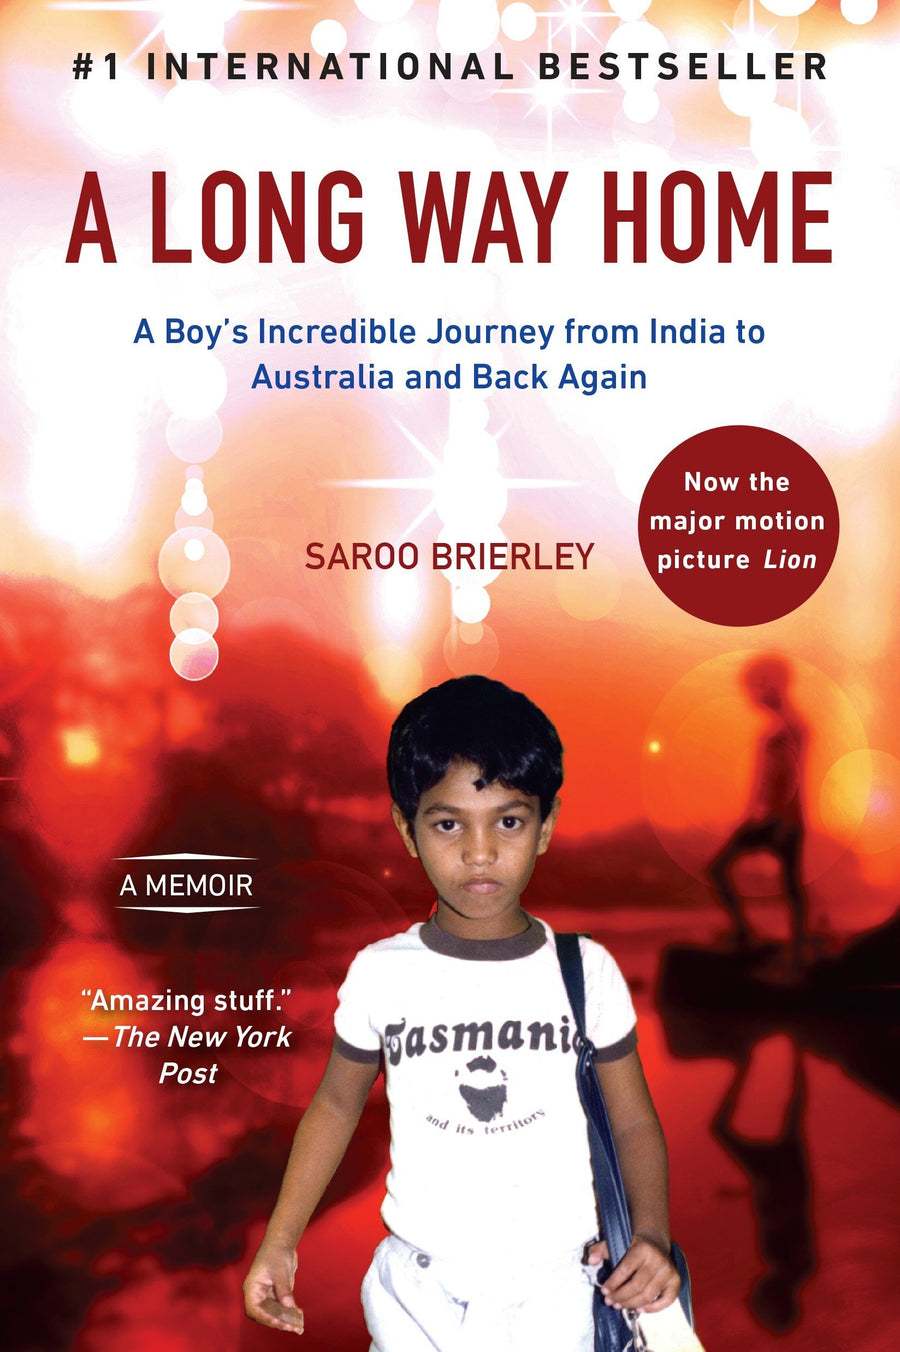 A Long Way Home: A Boy's Incredible Journey from India to Australia and Back Again